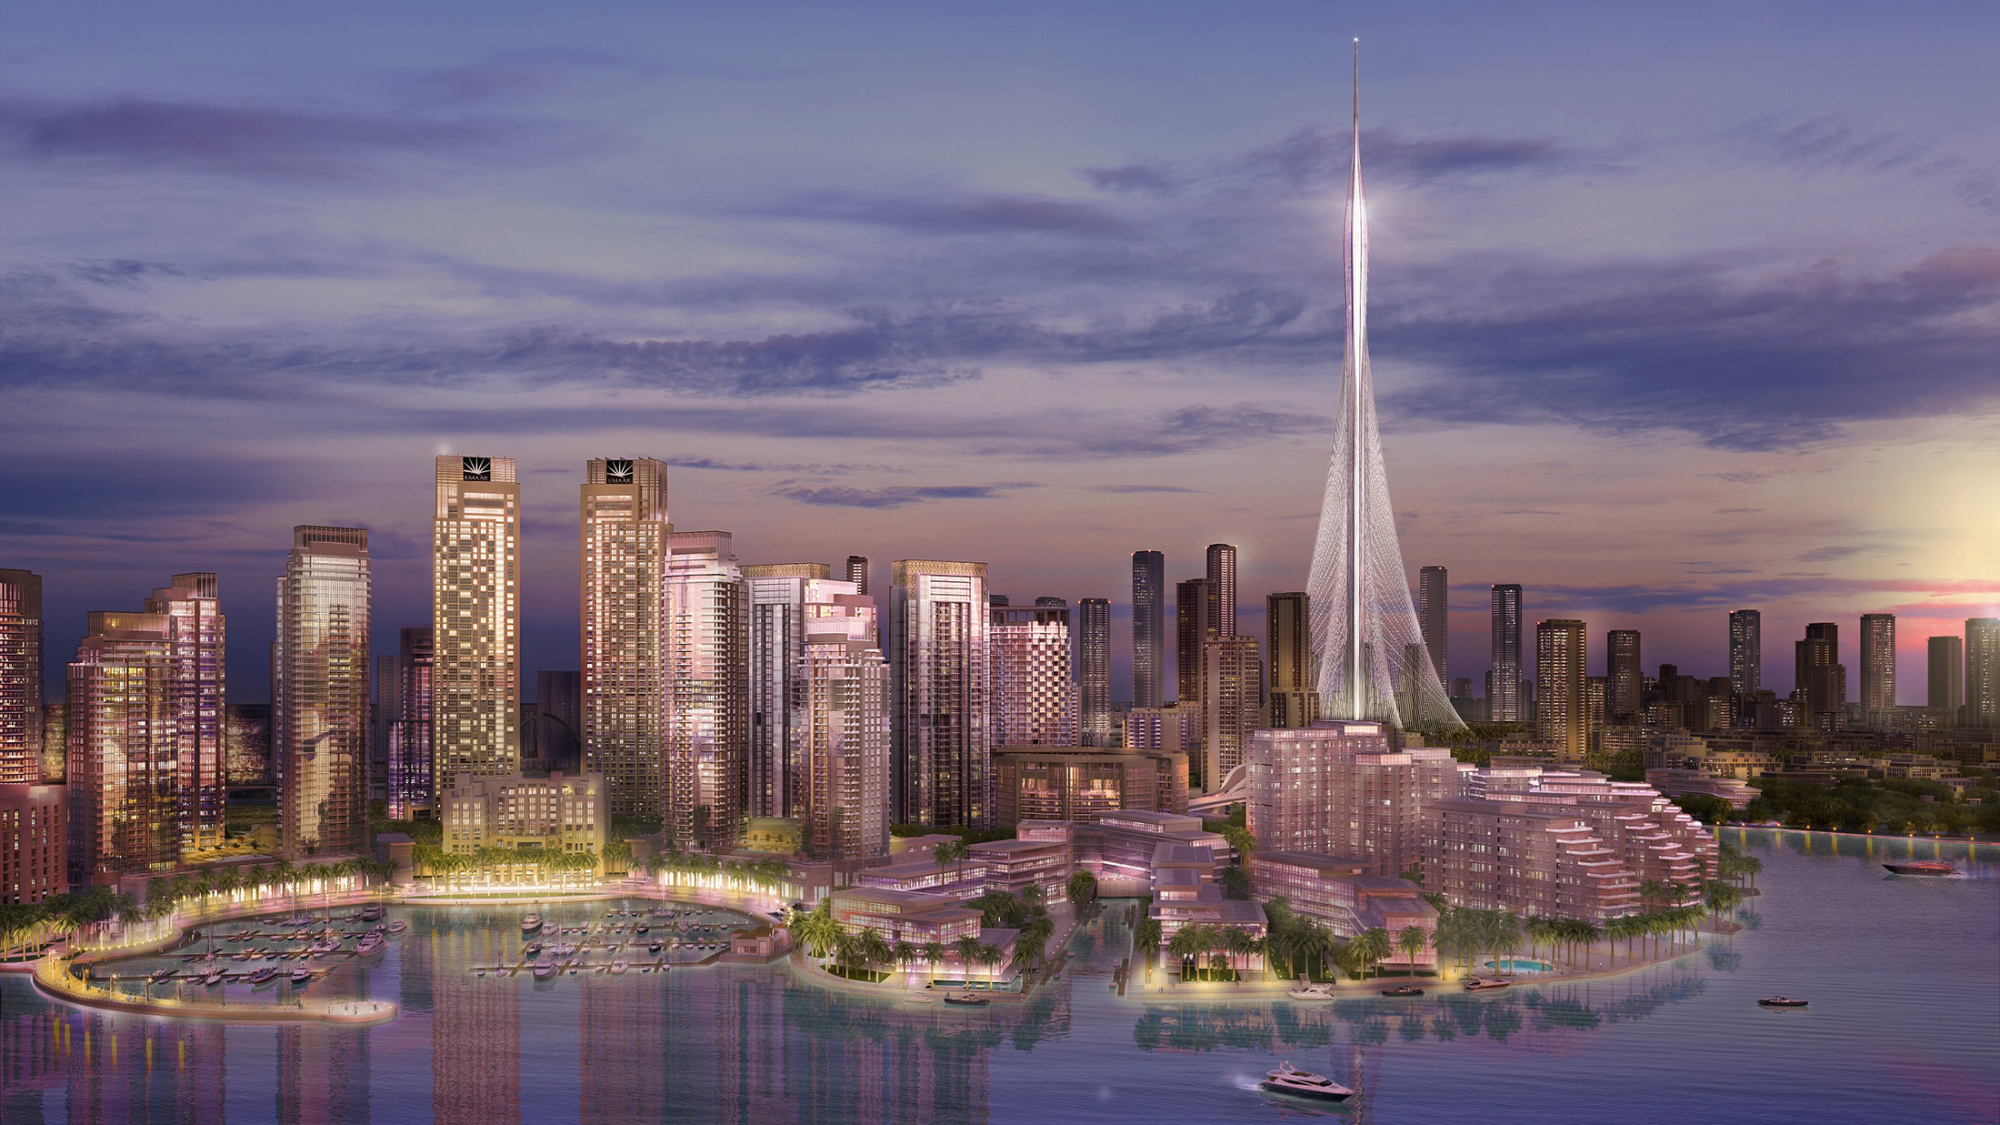 dubai kicks off construction of worlds tallest buildingagain bloomberg - Future Tallest Building In The World Under Construction